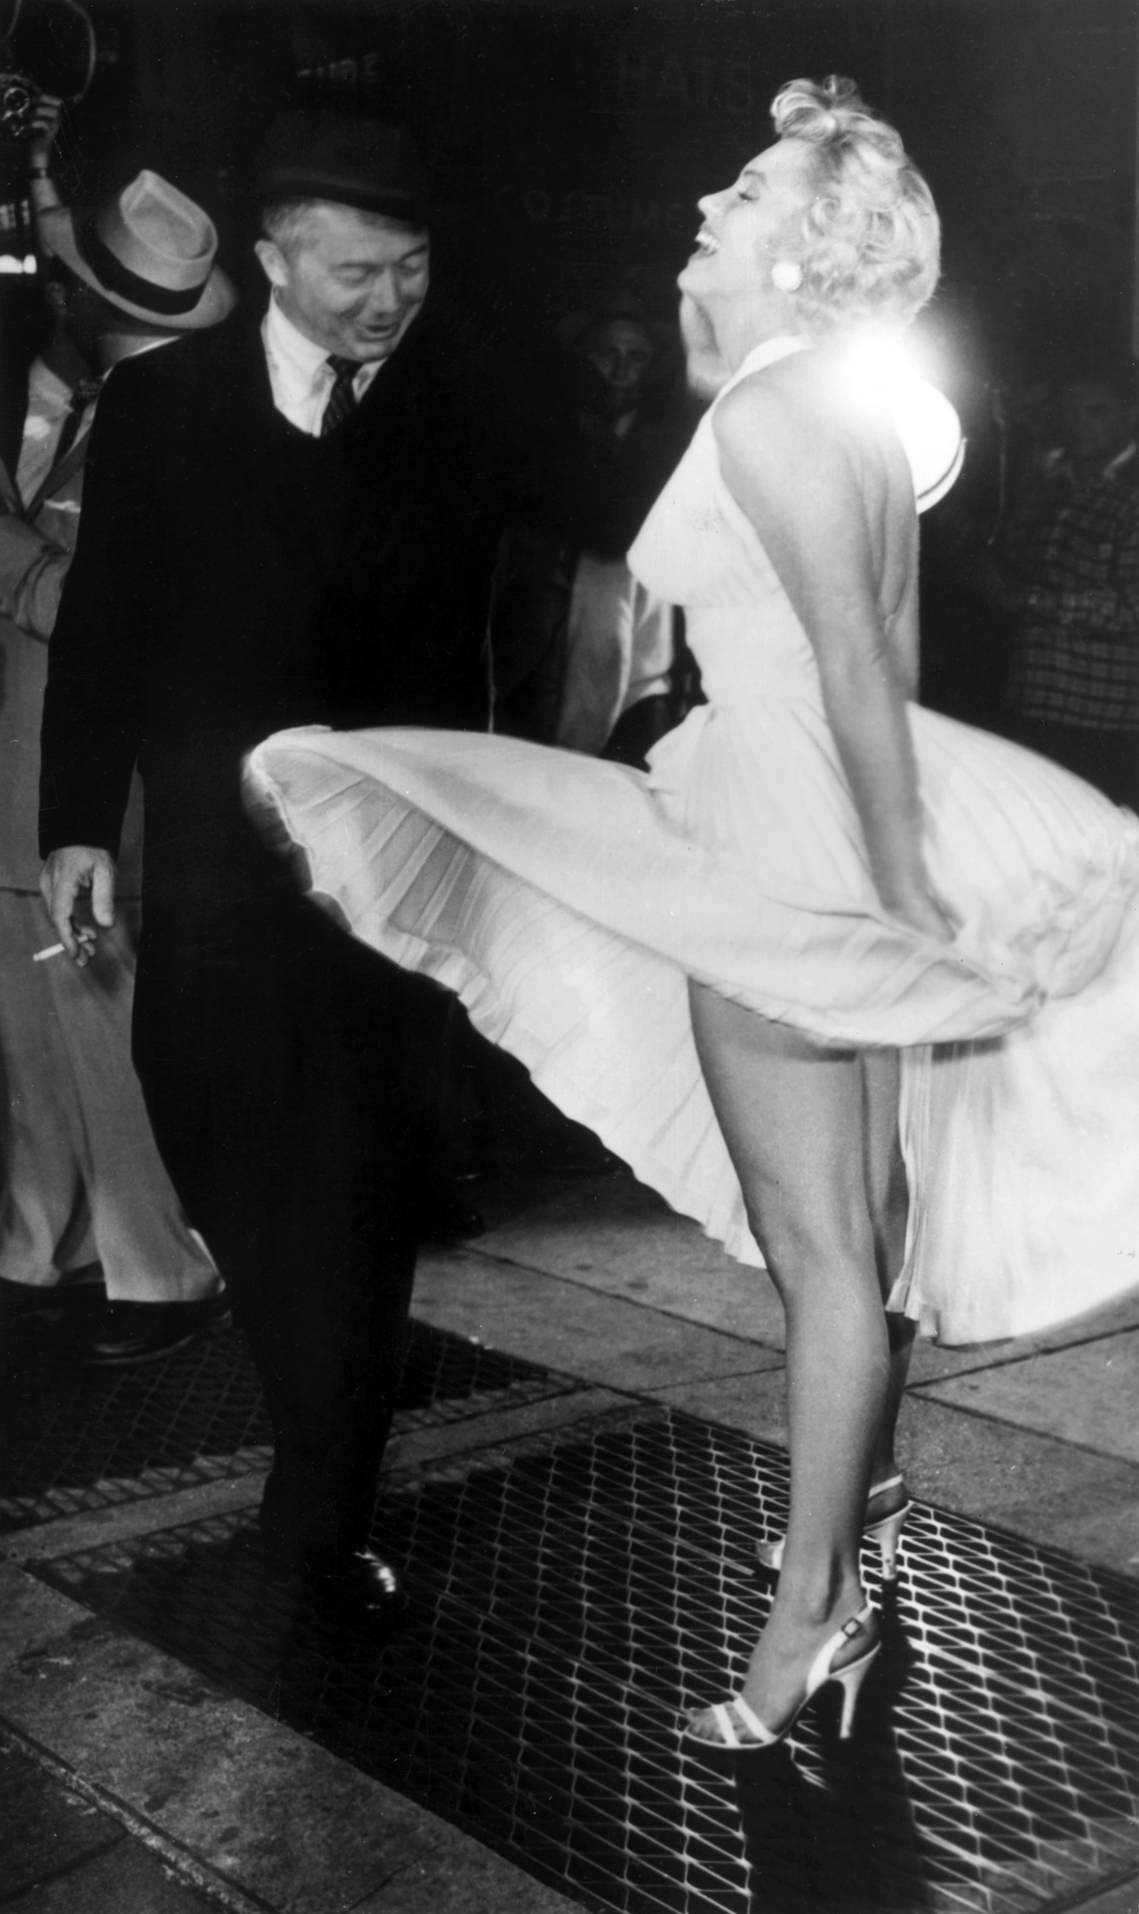 1000+ images about Marilyn Monroe on Pinterest | Marilyn ...